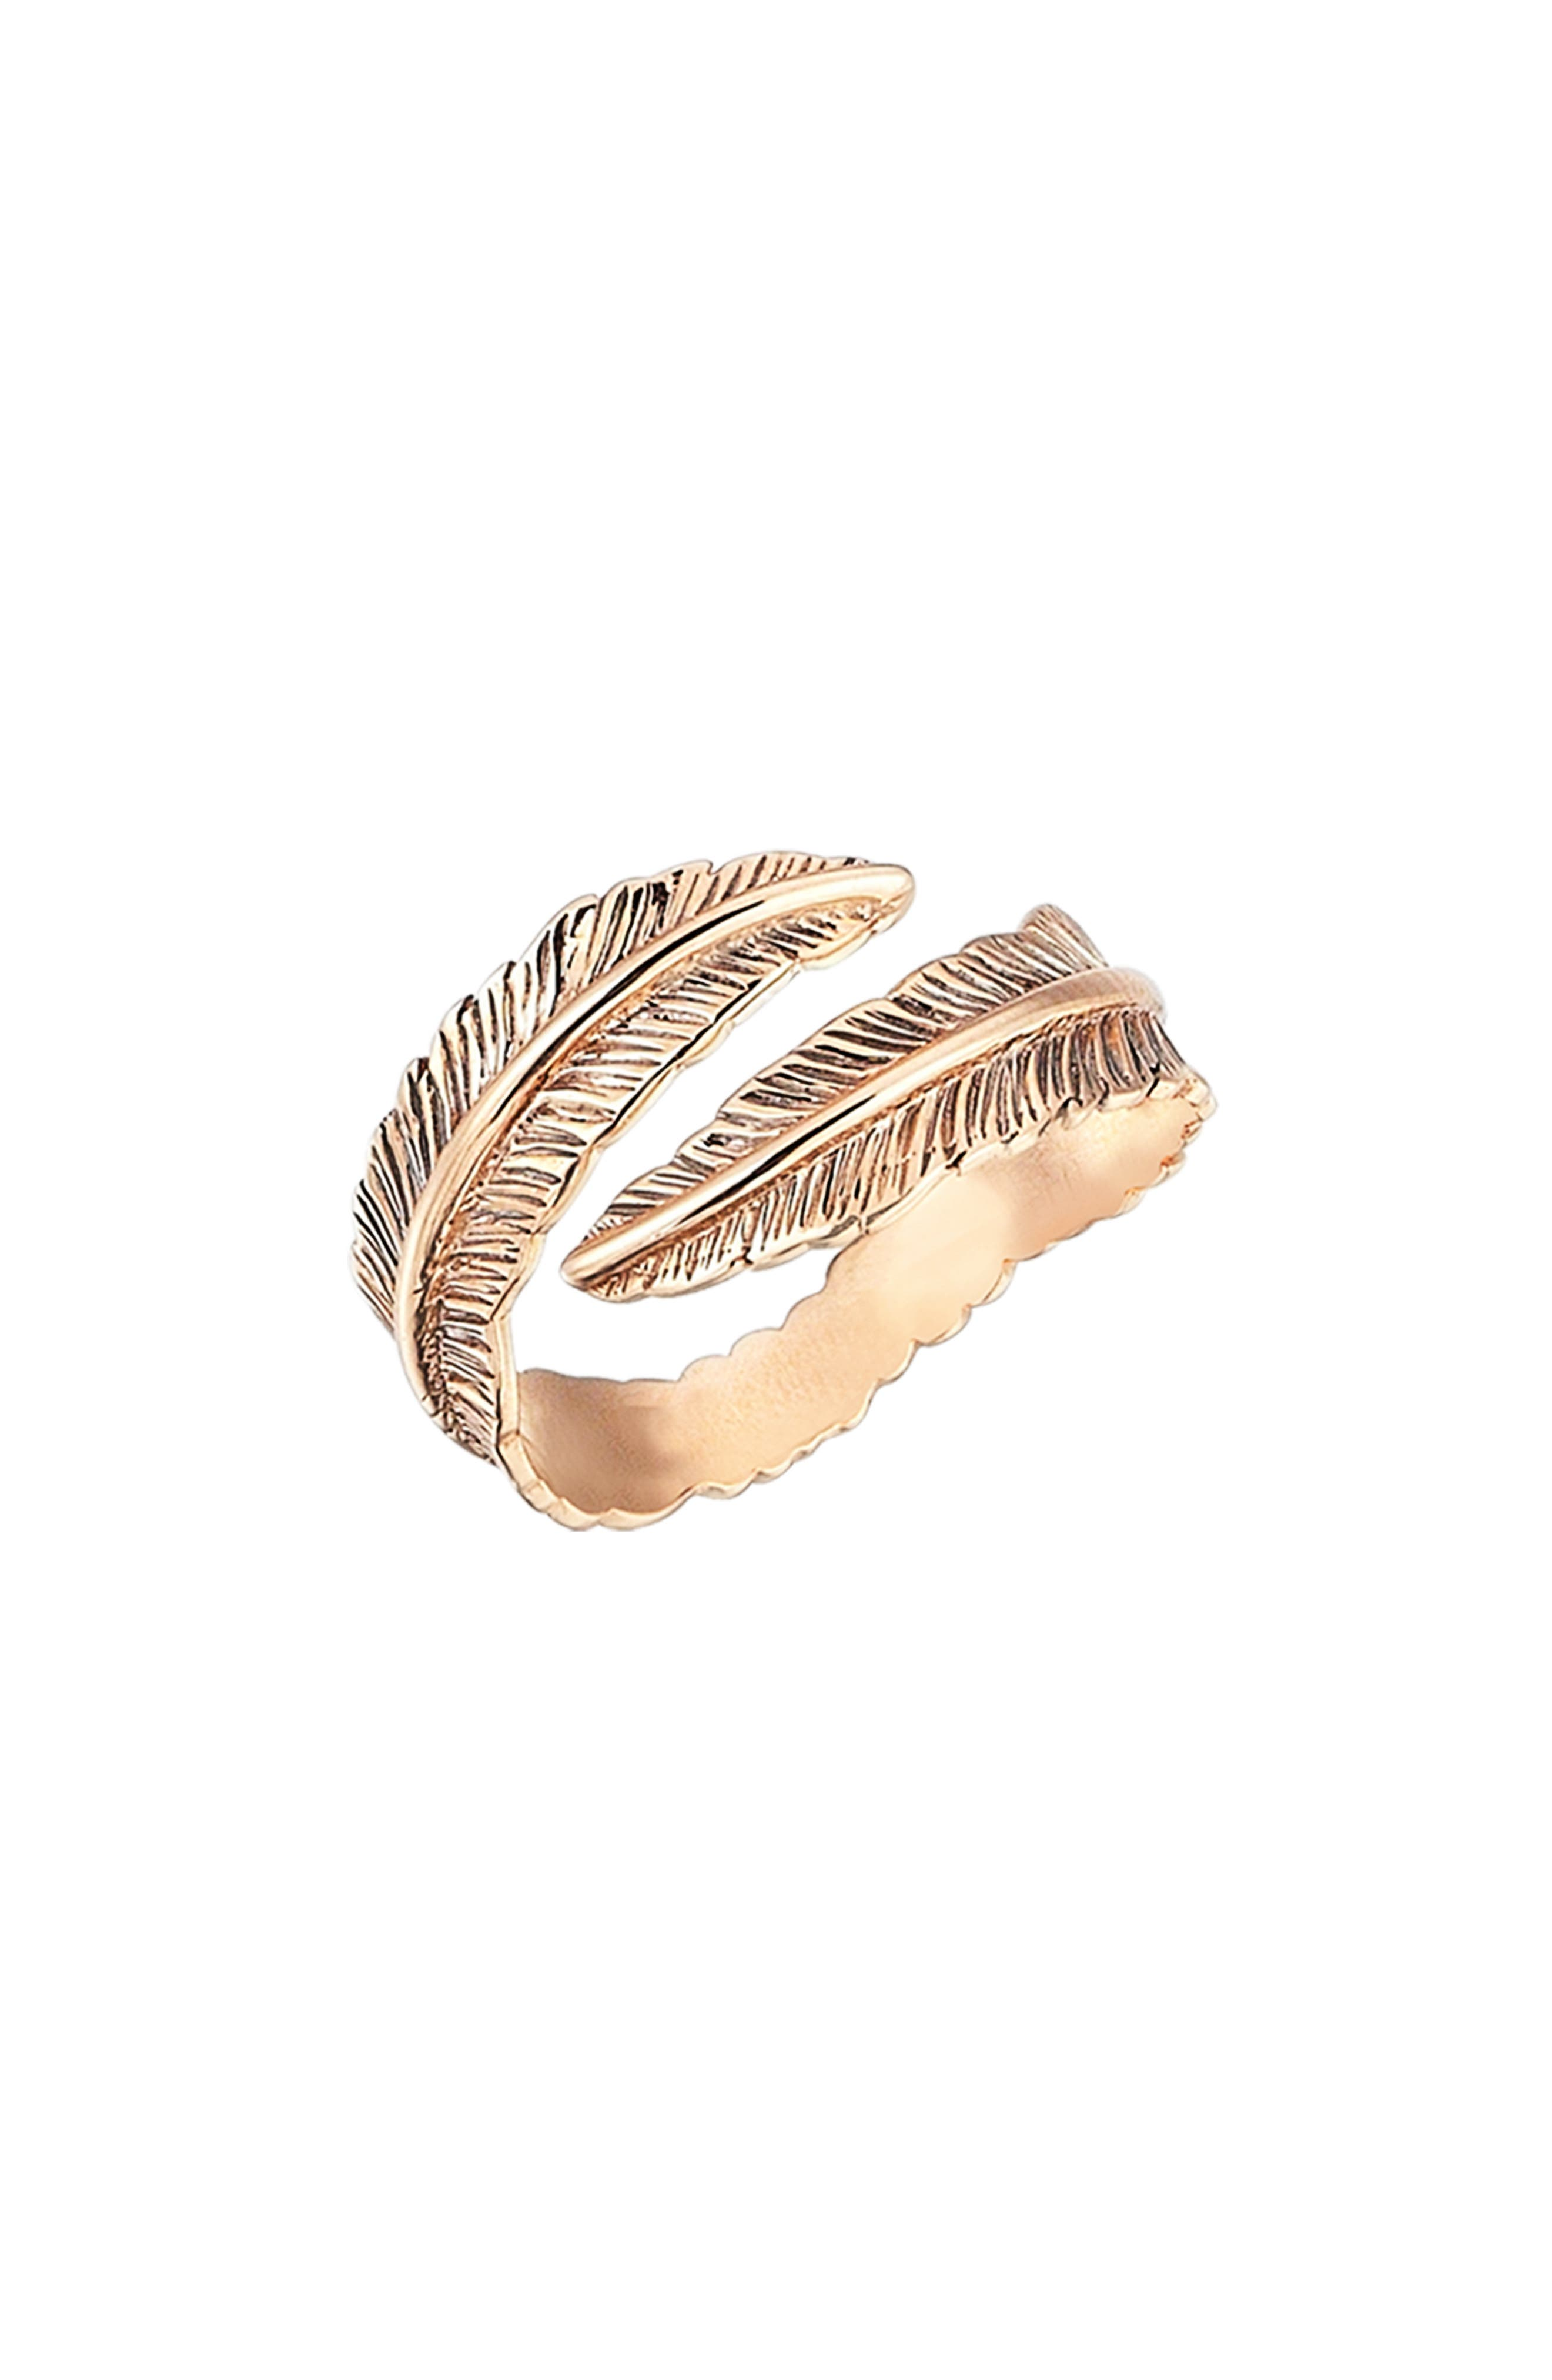 KISMET BY MILKA, Double Row Feather Pinky Ring, Main thumbnail 1, color, ROSE GOLD